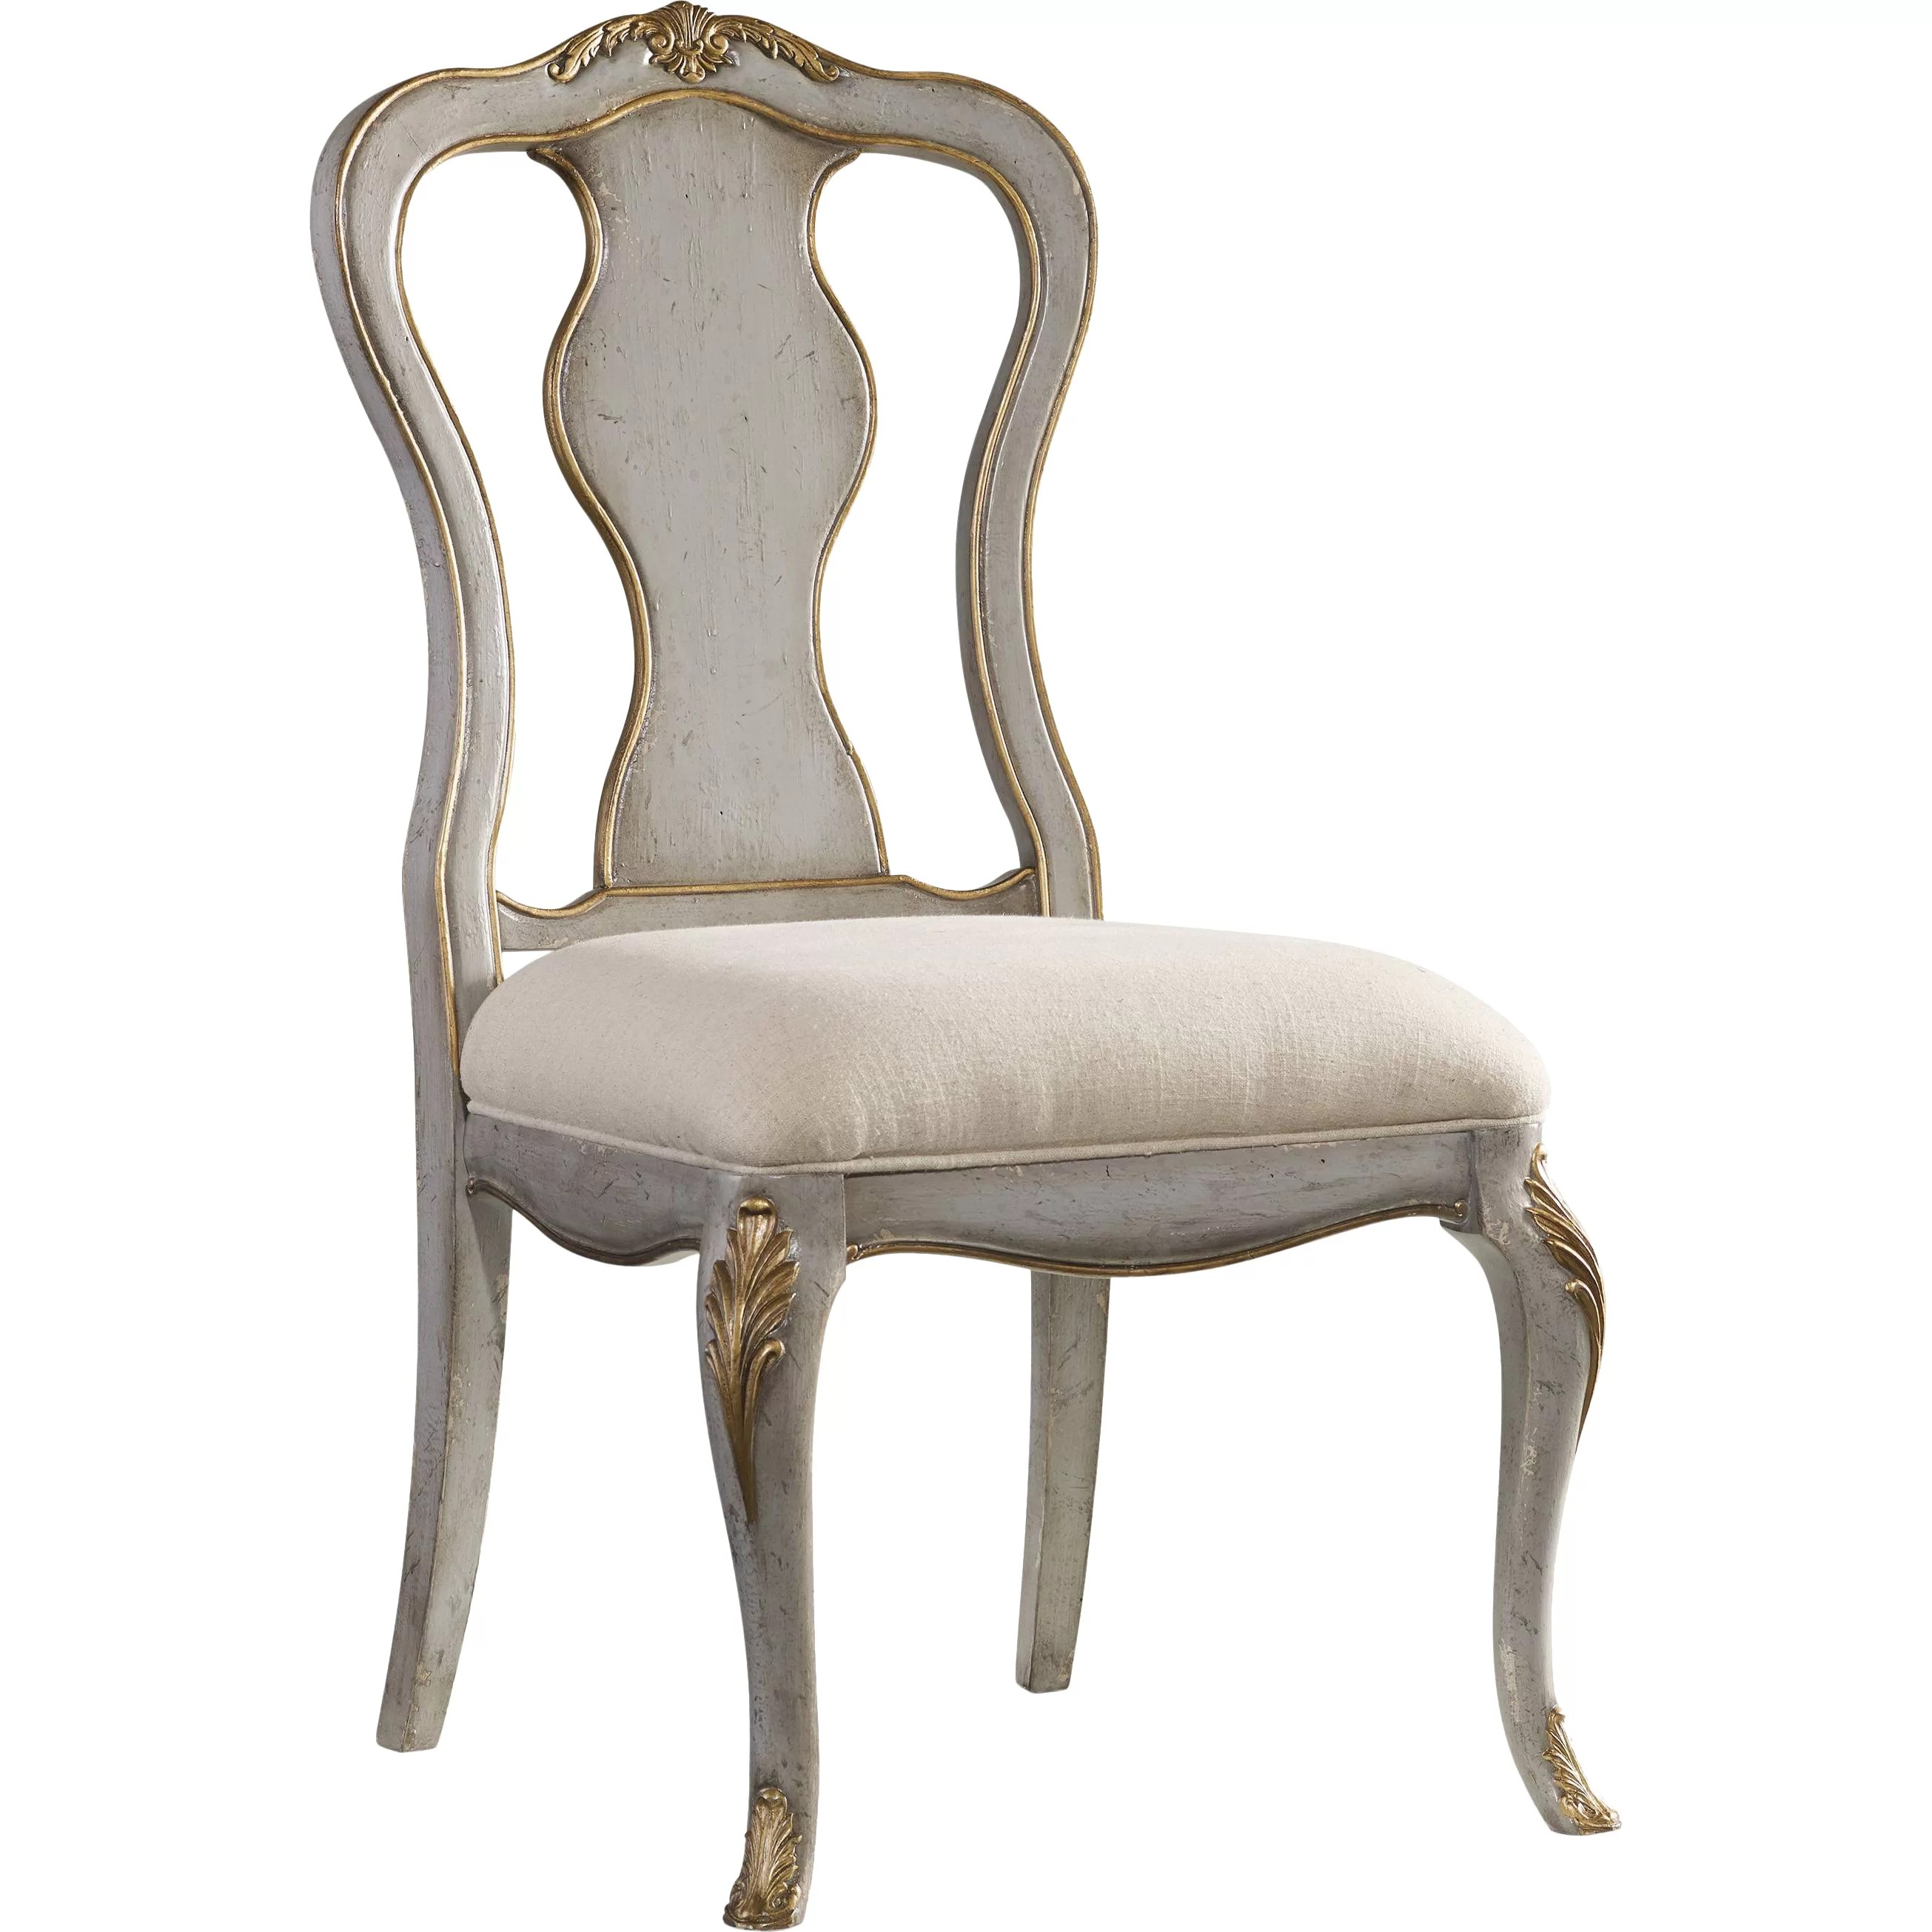 desk chair is too low folding table and chairs white hooker furniture back reviews wayfair